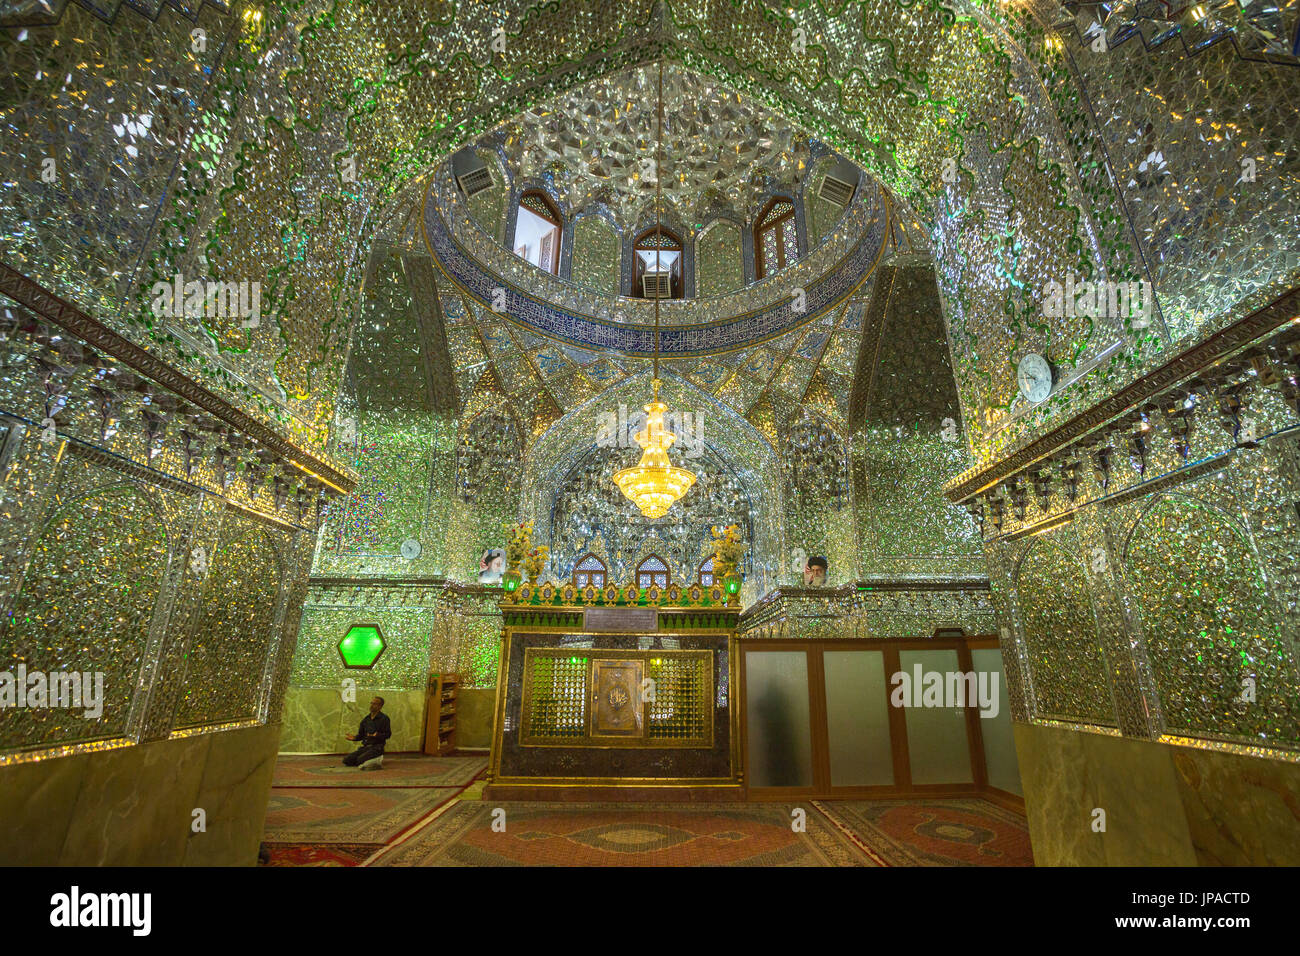 Iran, Shiraz City, Imamyadeh Mausoleum, Tomb of Emir Ali - Stock Image